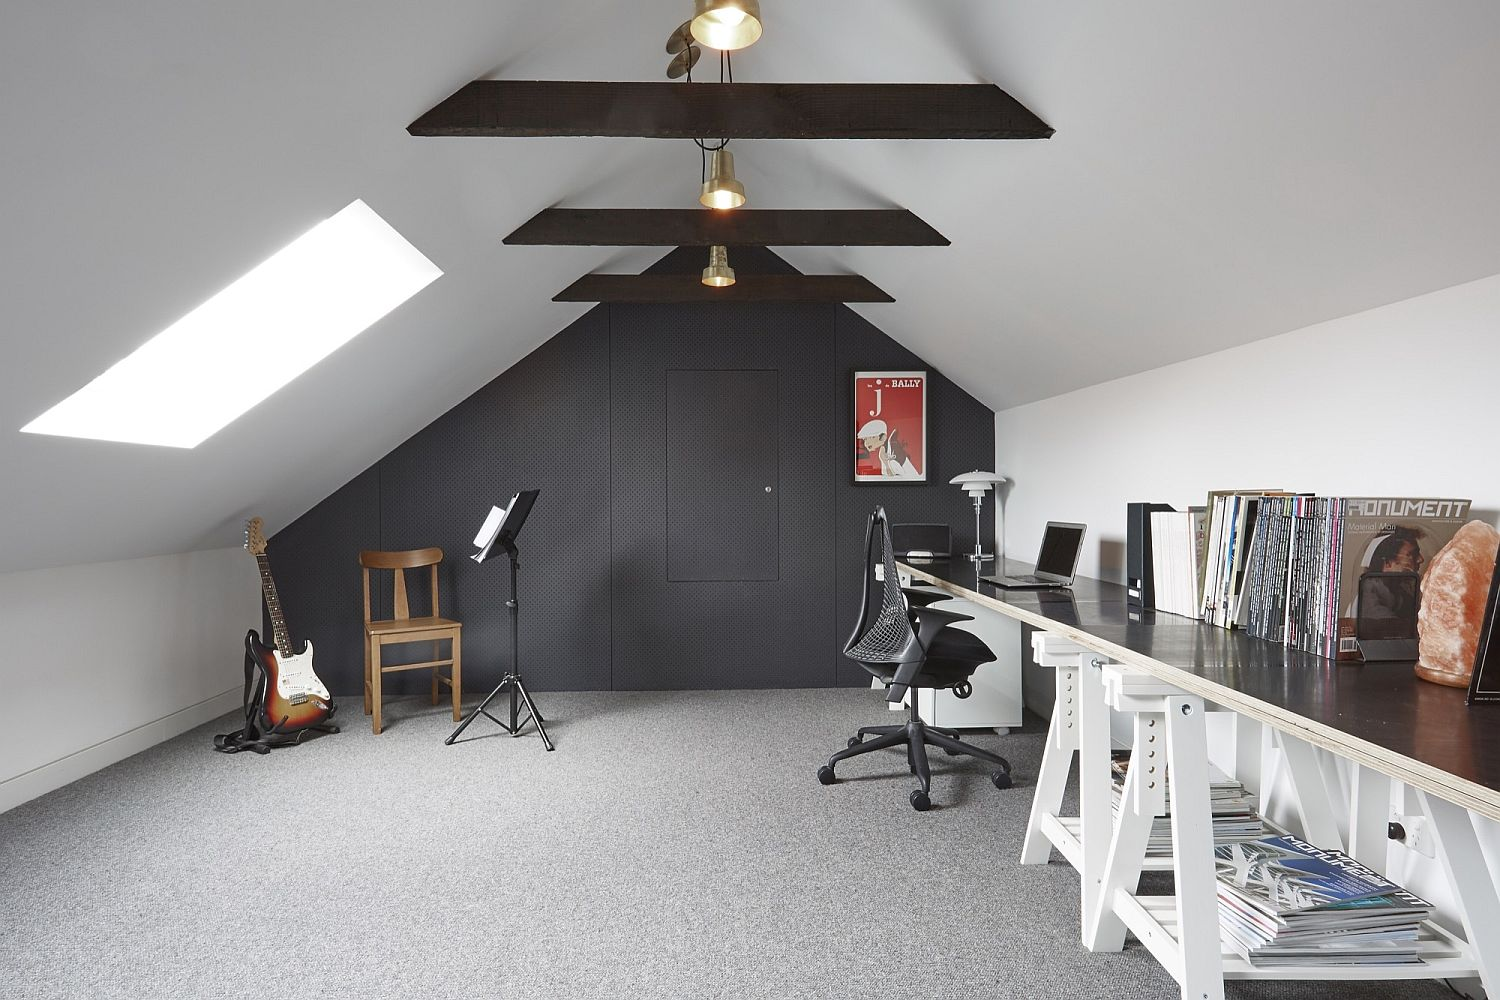 Attic level studio and workspace rolled into one